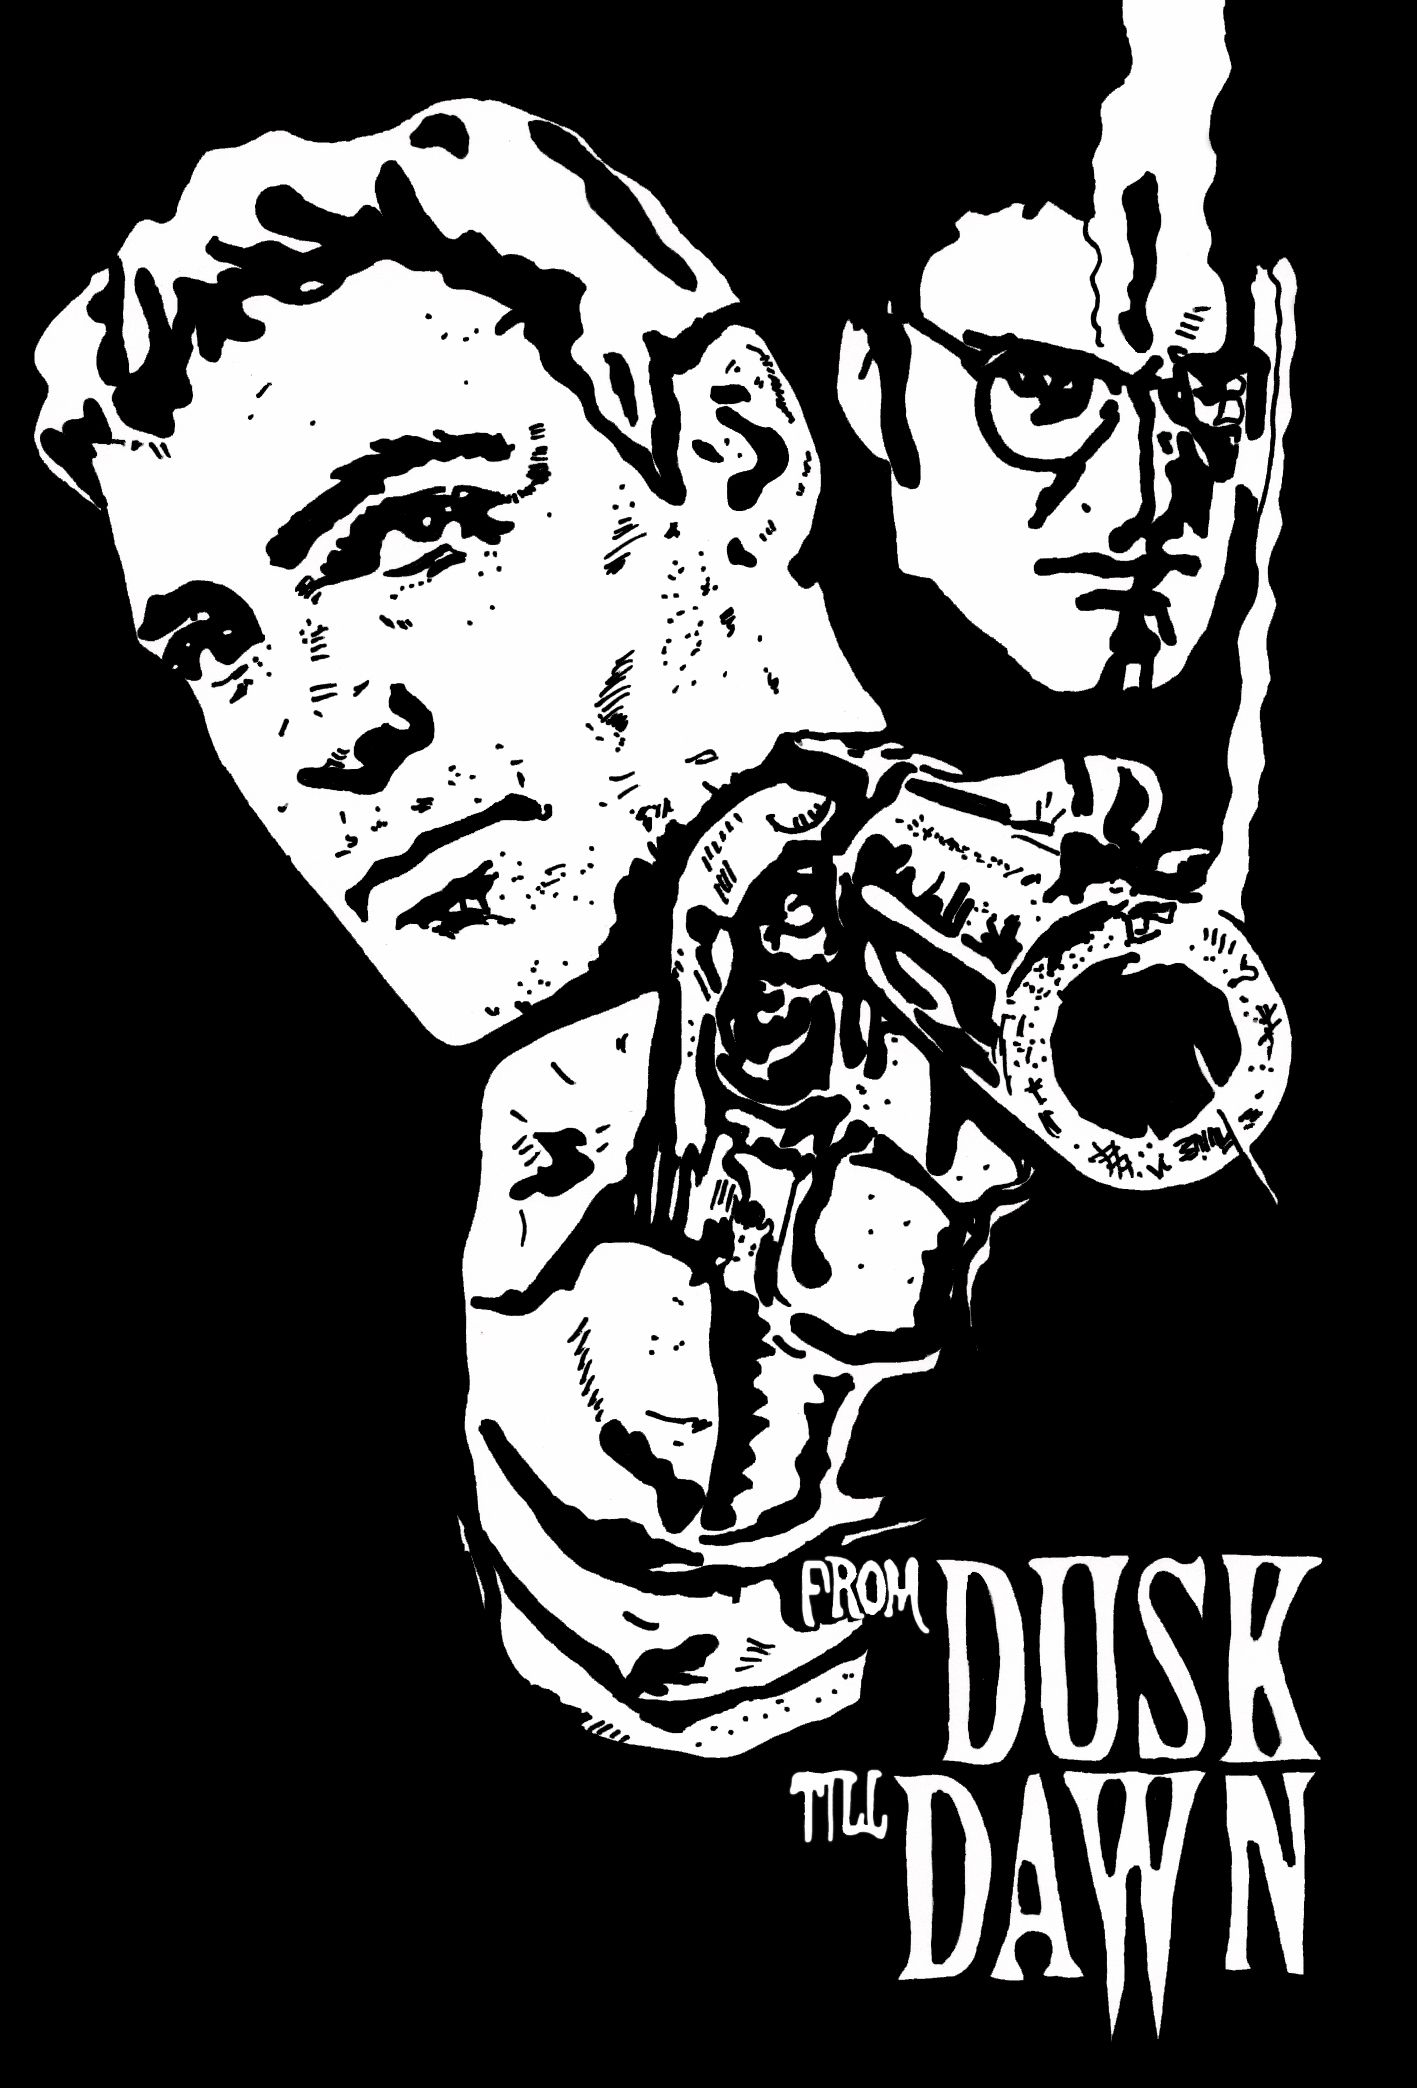 (From dusk till dawn) This seemed really great, then it ...